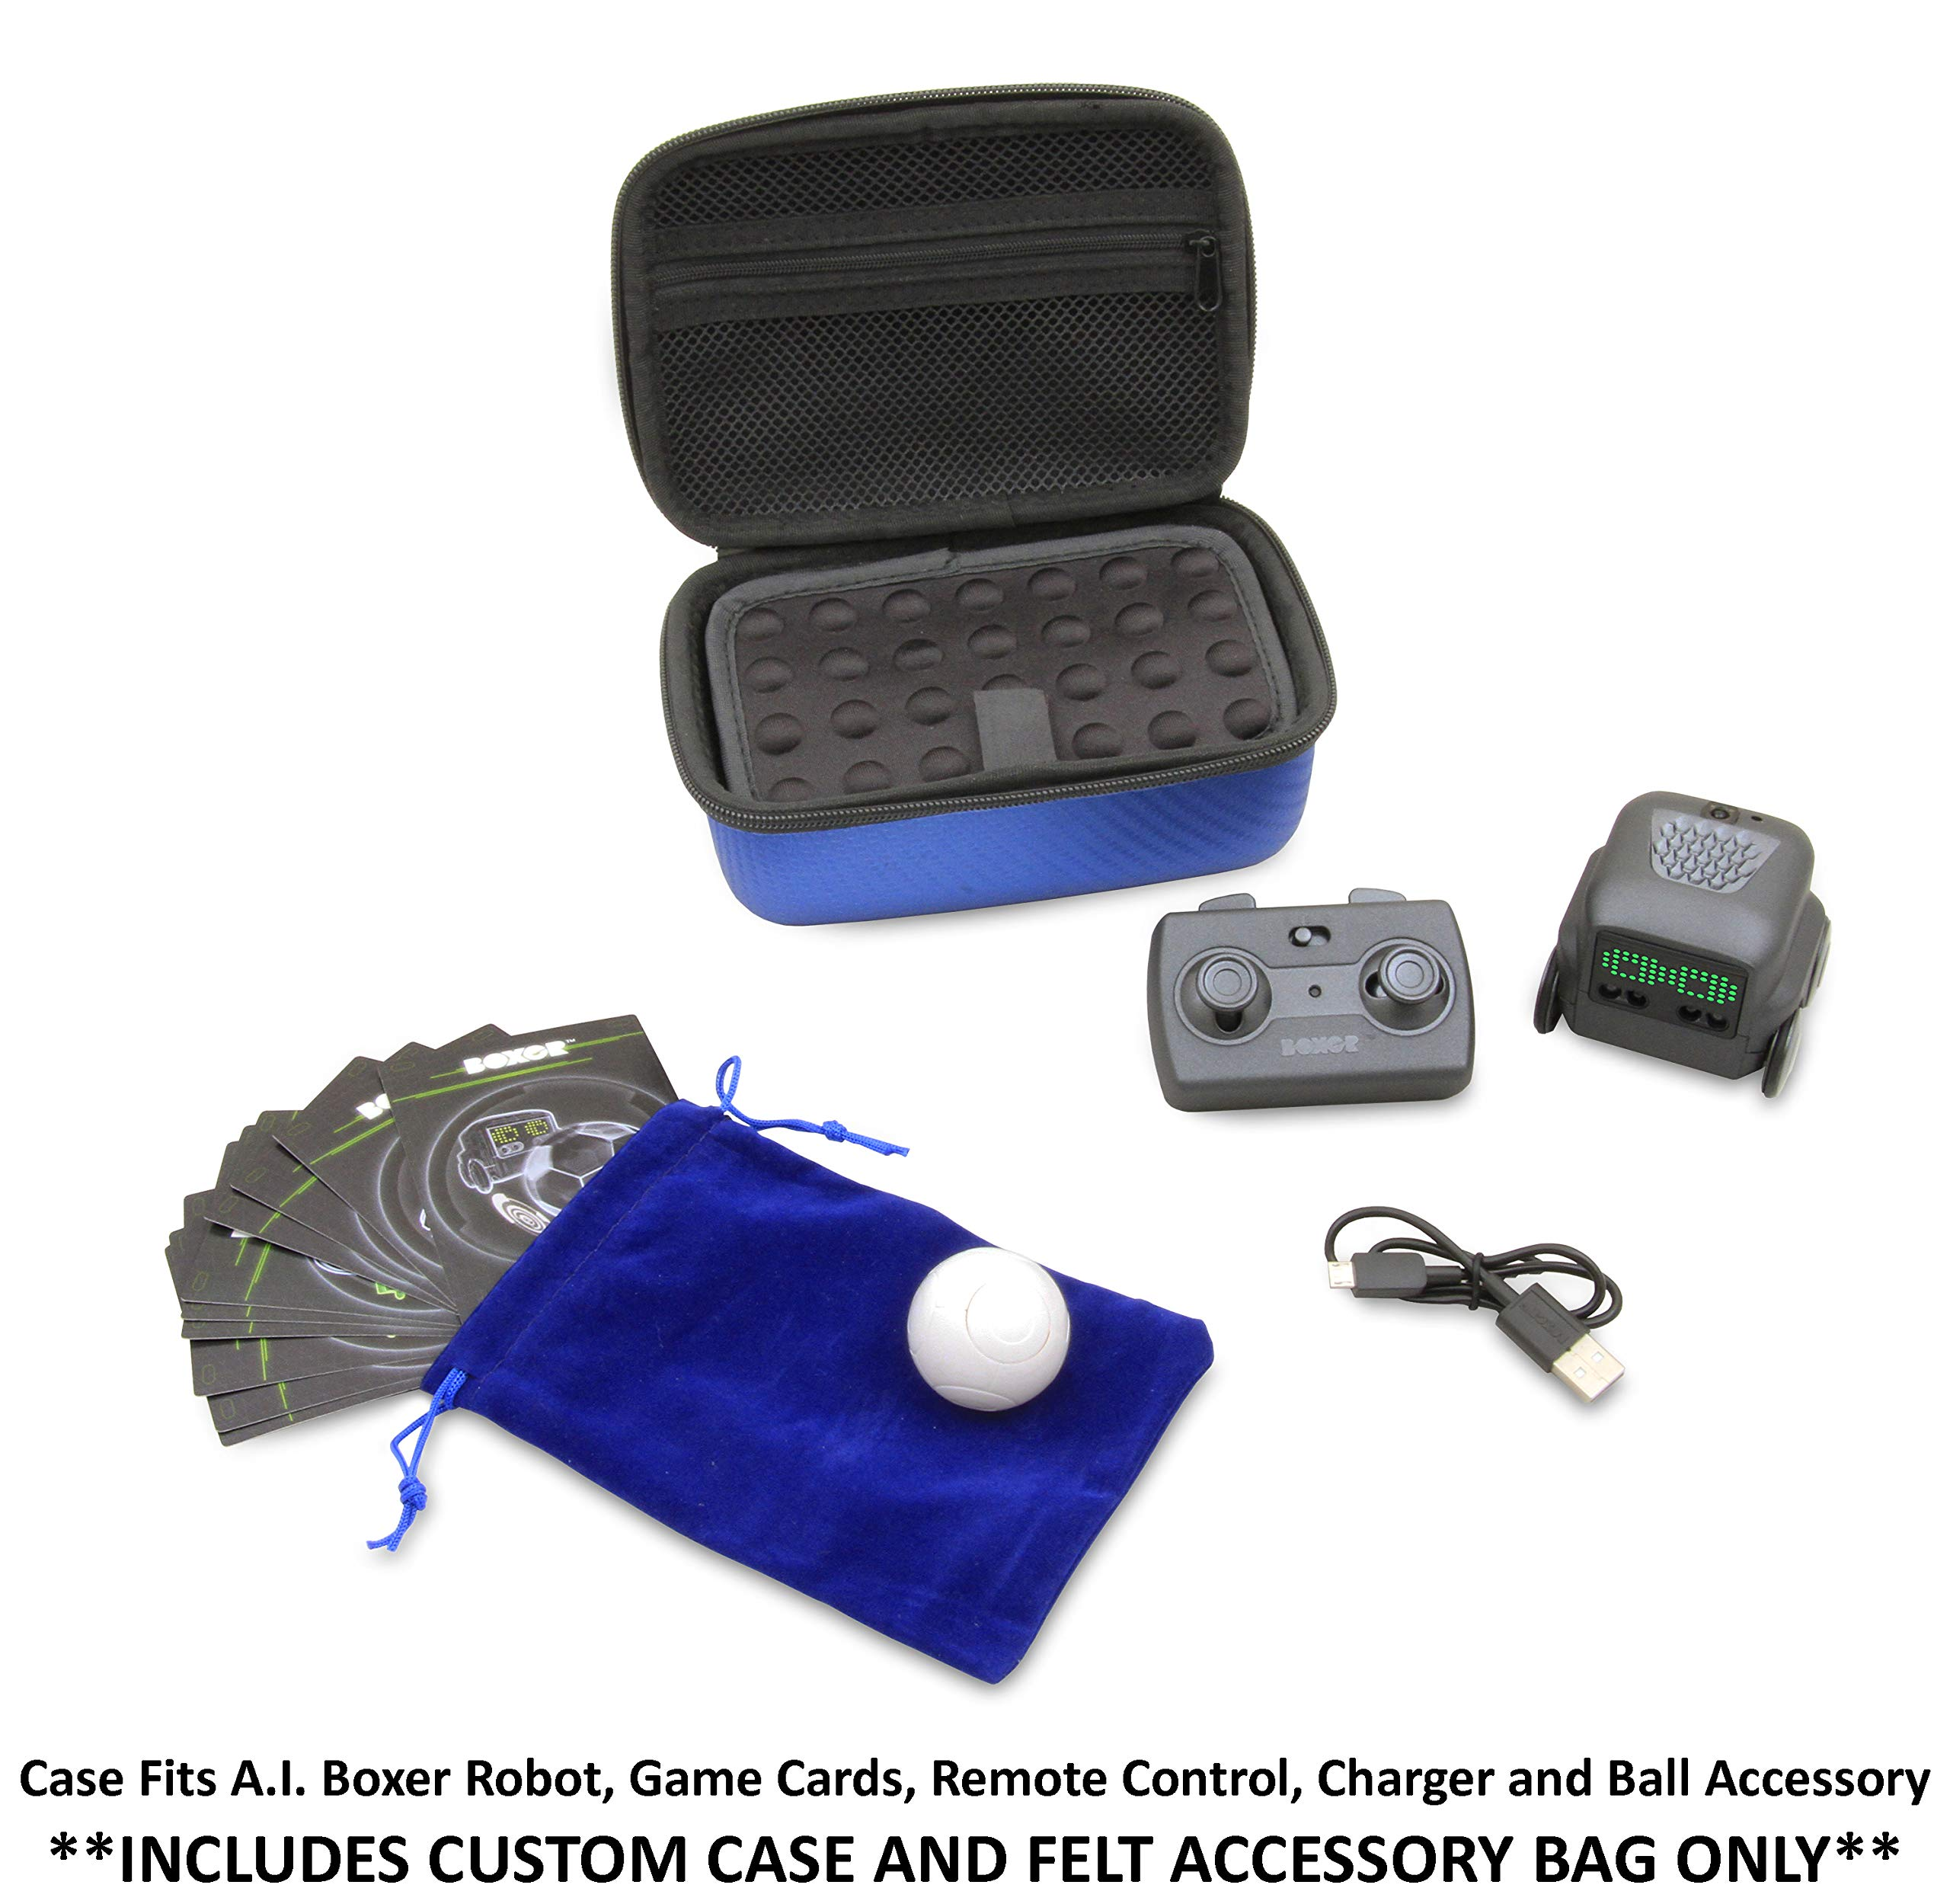 CASEMATIX Blue Toy Case Compatible with Boxer Interactive A.I. Robot - Includes Toy Box and Felt Bag to Hold Game Activating Feature Cards by CASEMATIX (Image #5)